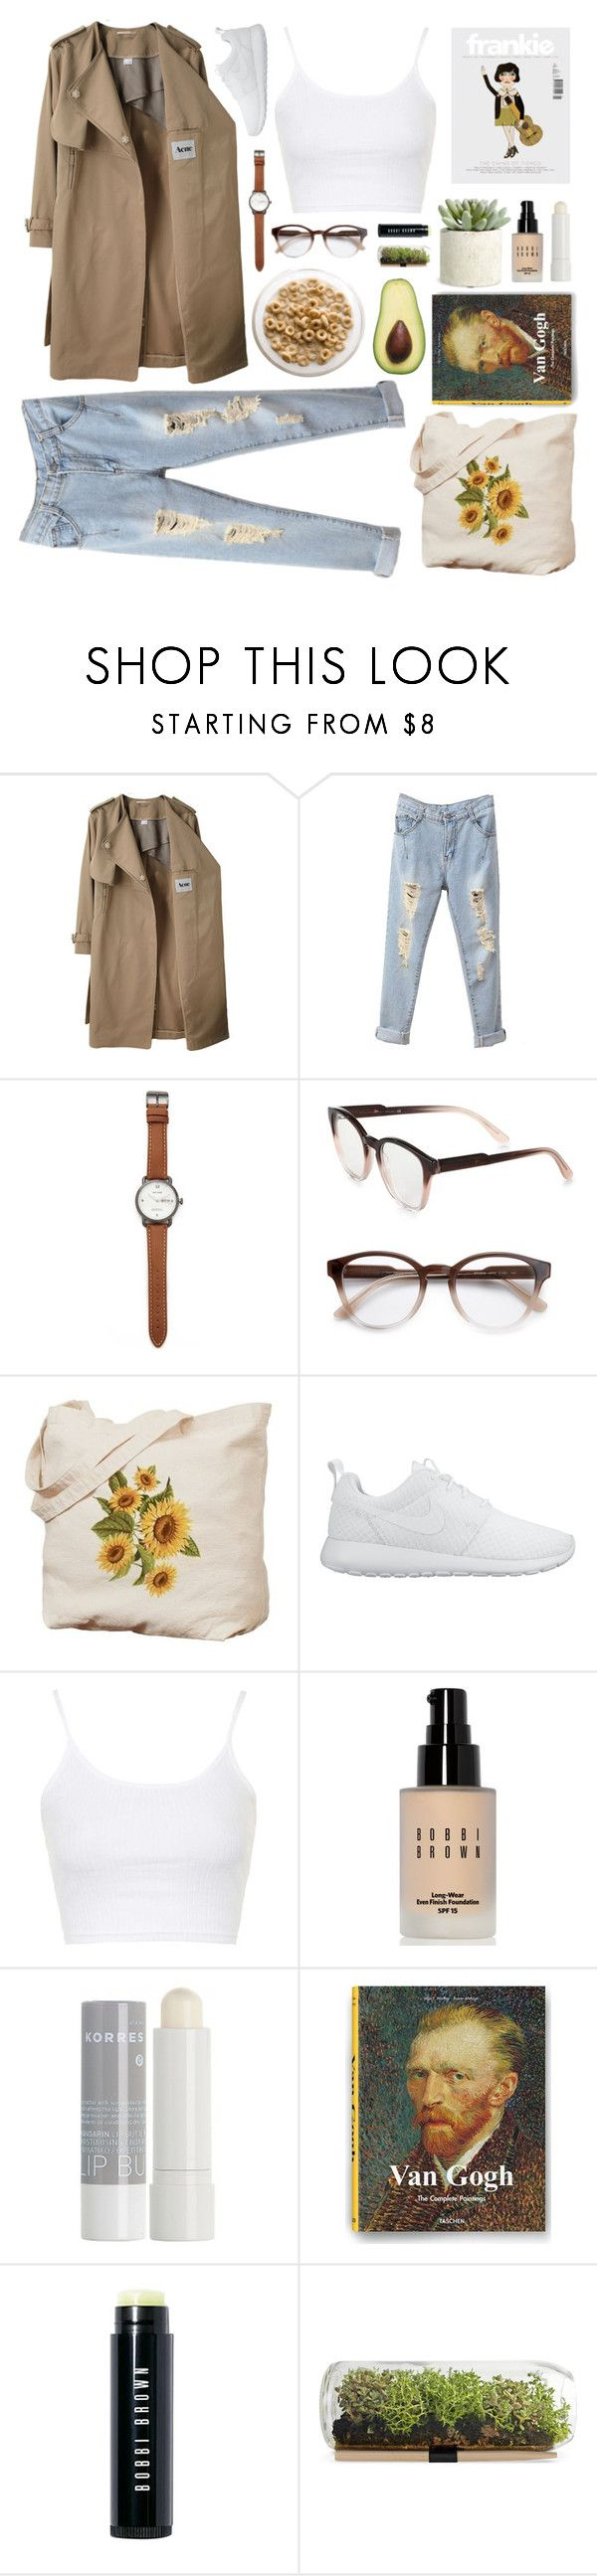 """""""A Long Way Down"""" by megmara ❤ liked on Polyvore featuring Acne Studios, Jack Spade, STELLA McCARTNEY, NIKE, Topshop, Bobbi Brown Cosmetics, Korres and Allstate Floral"""